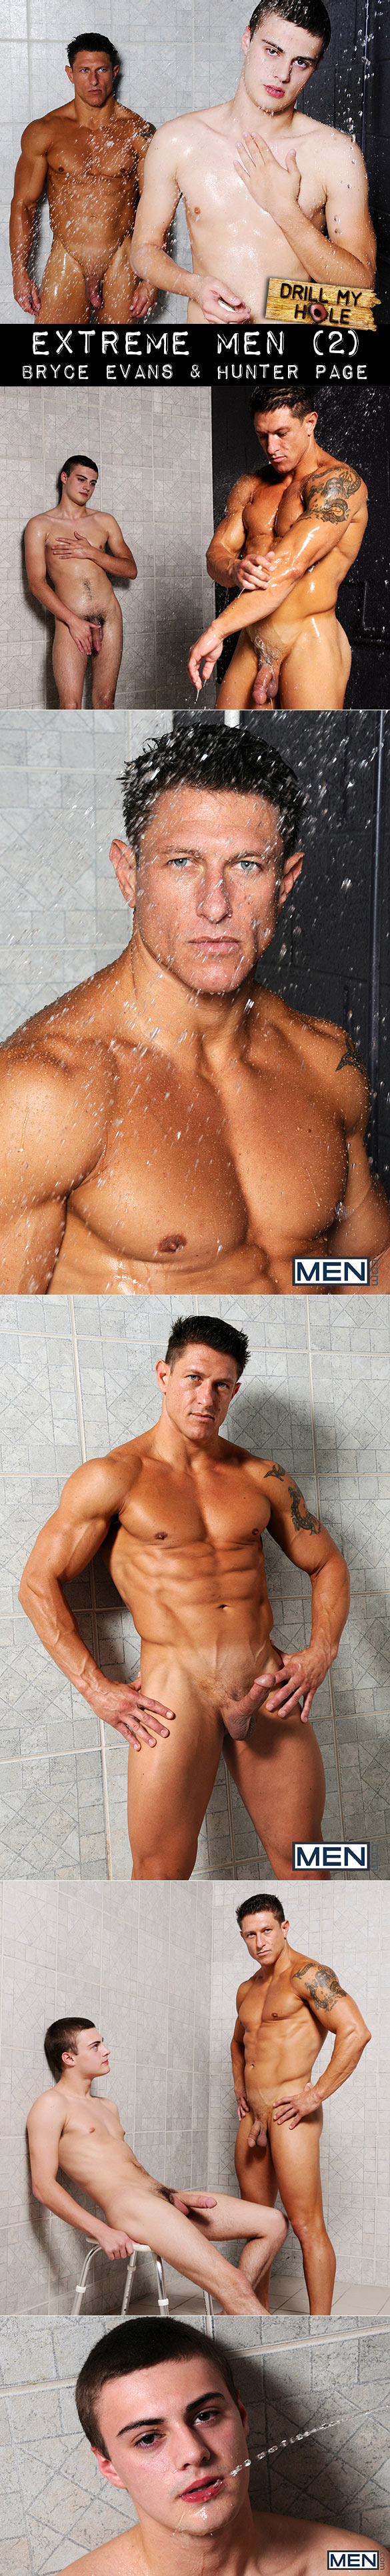 "Men.com: Bryce Evans pounds Hunter Page in ""Extreme Men, Part 2"""